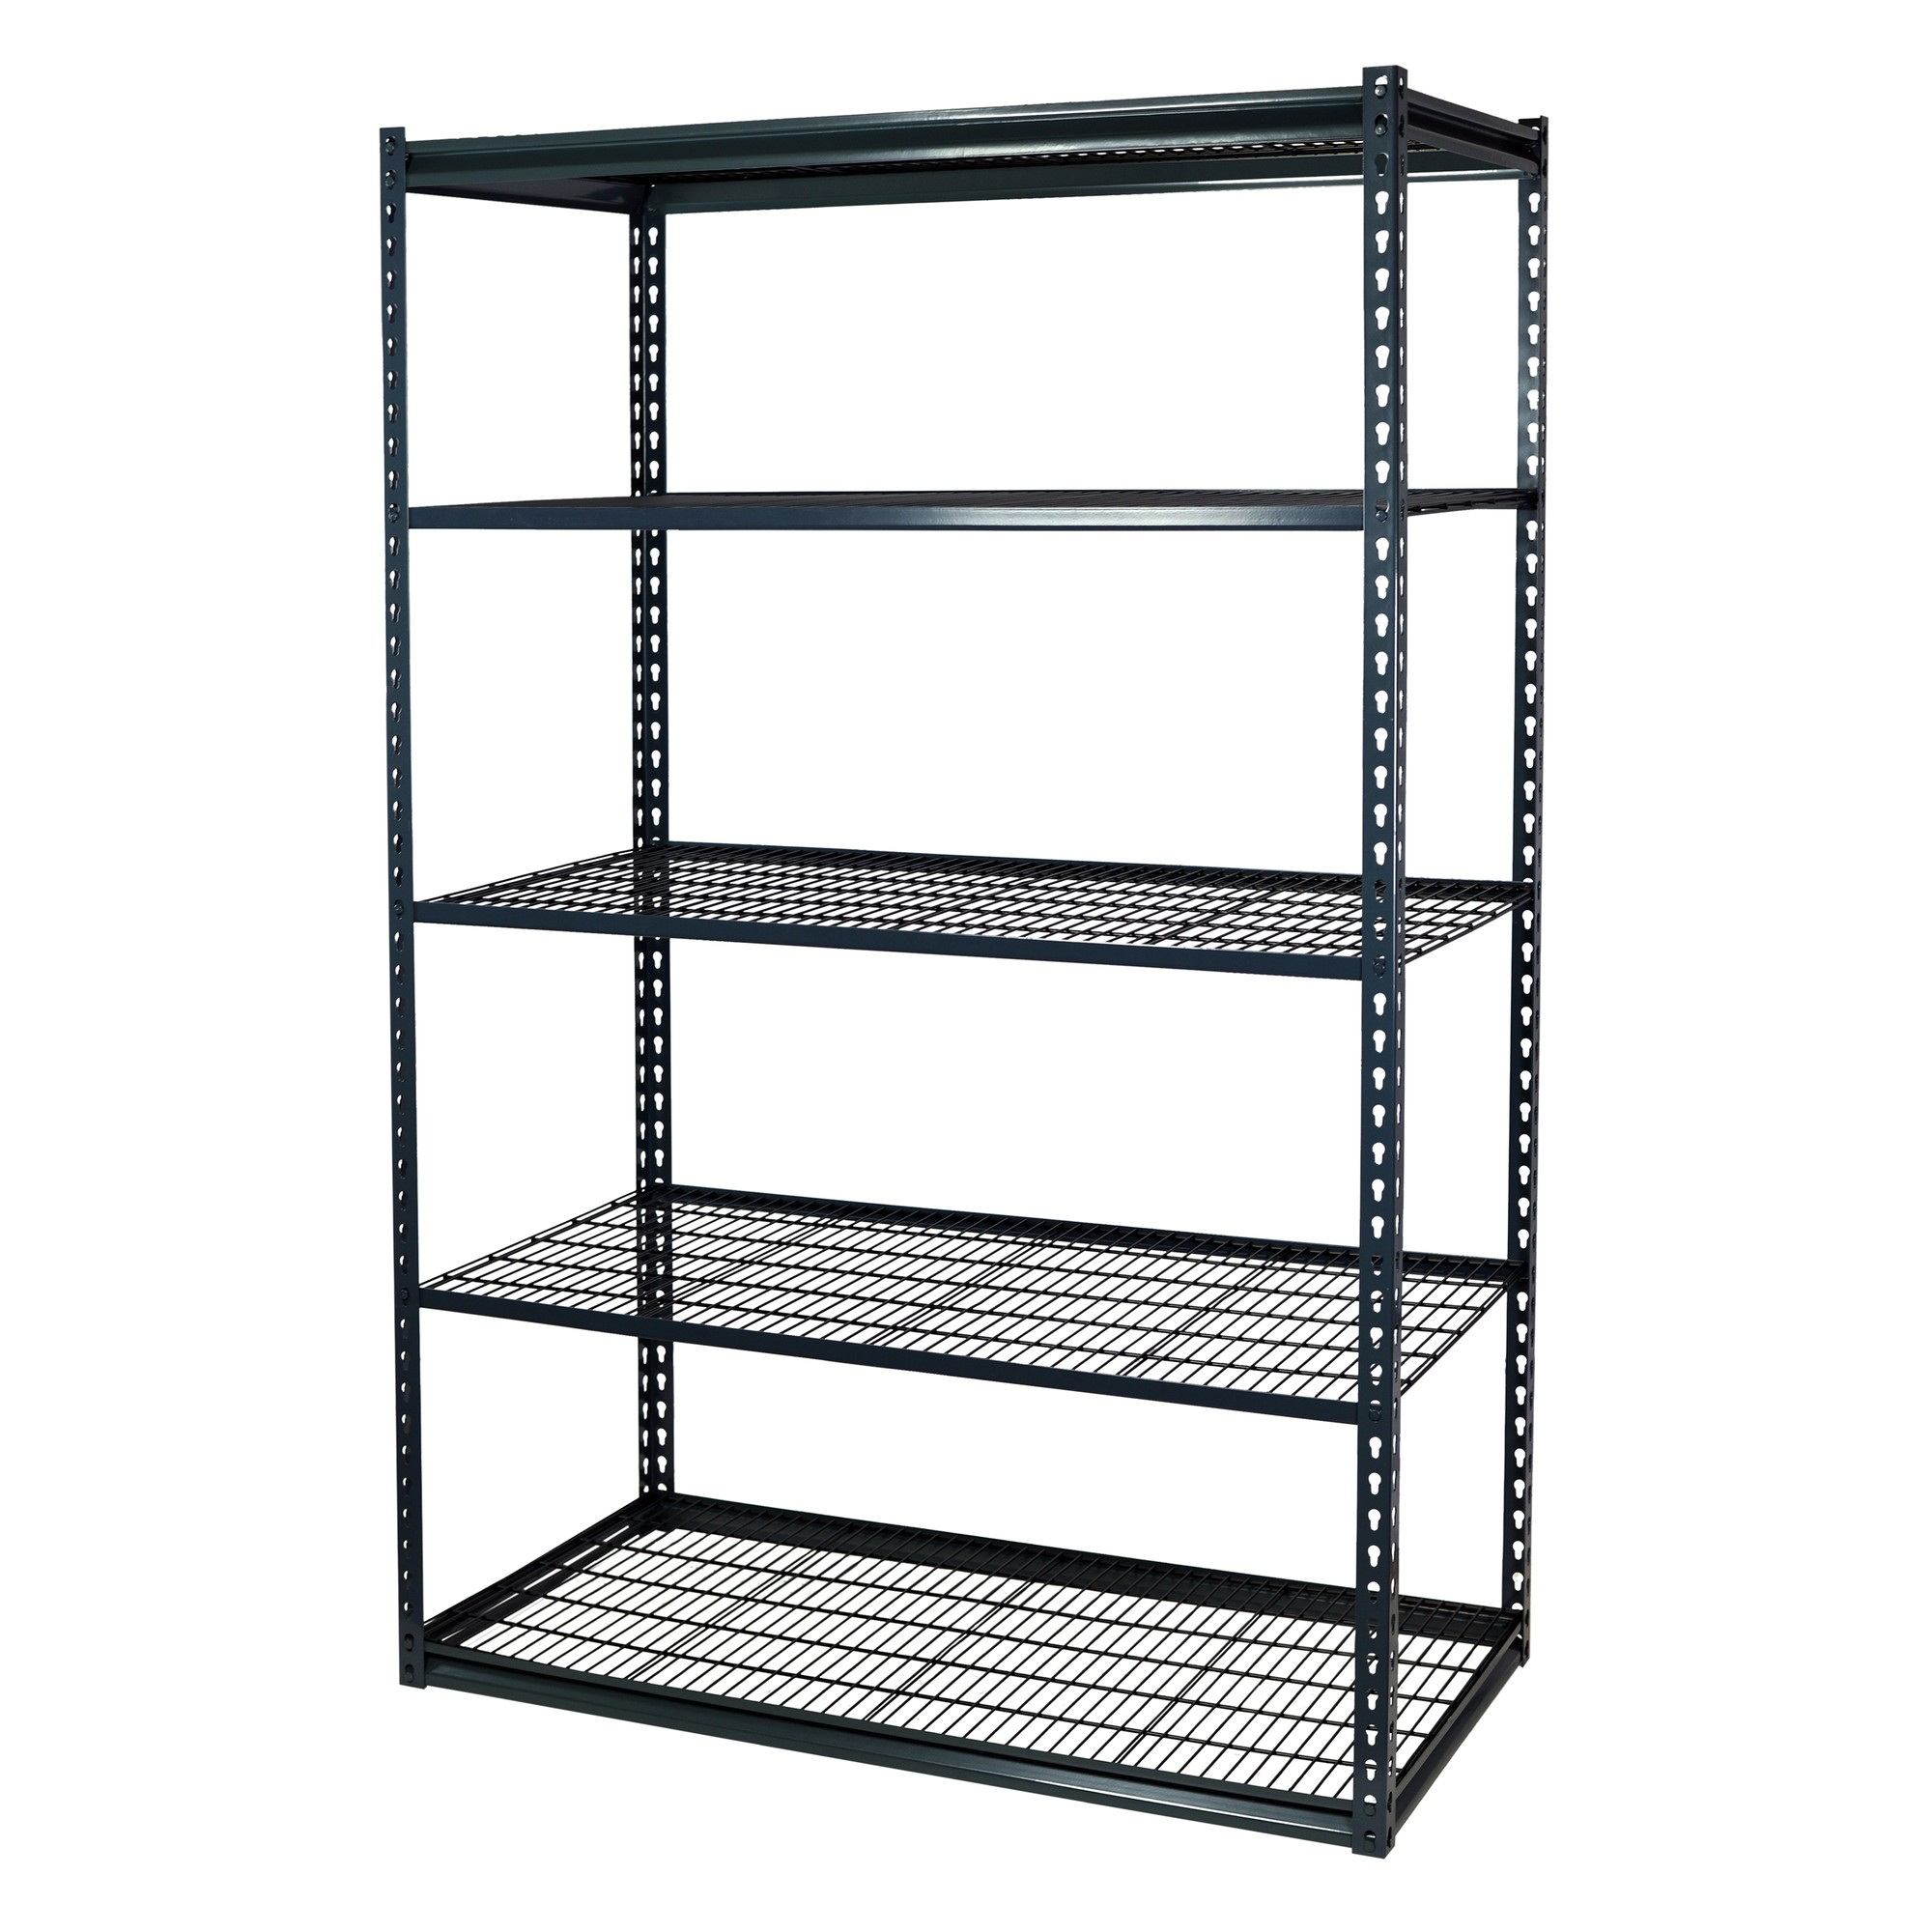 Storage Max Garage Shelving Boltless, 36 x 12 x 72, Low Profile, 5 Shelves